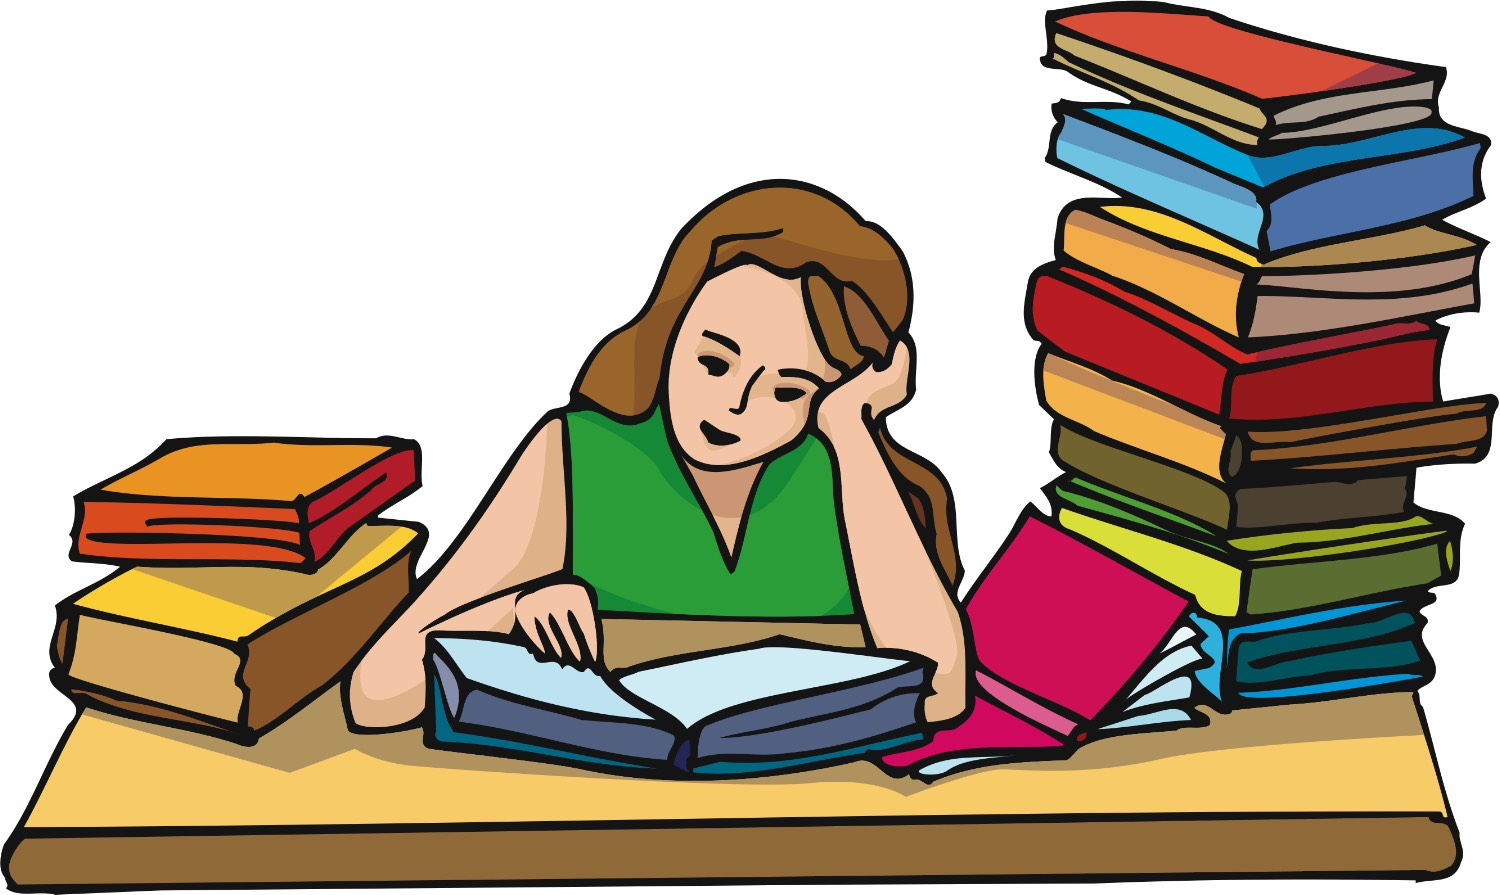 3. Work on all your homework for one class than take a break. Than work on all your homework for another class and take a break. So on and so on...